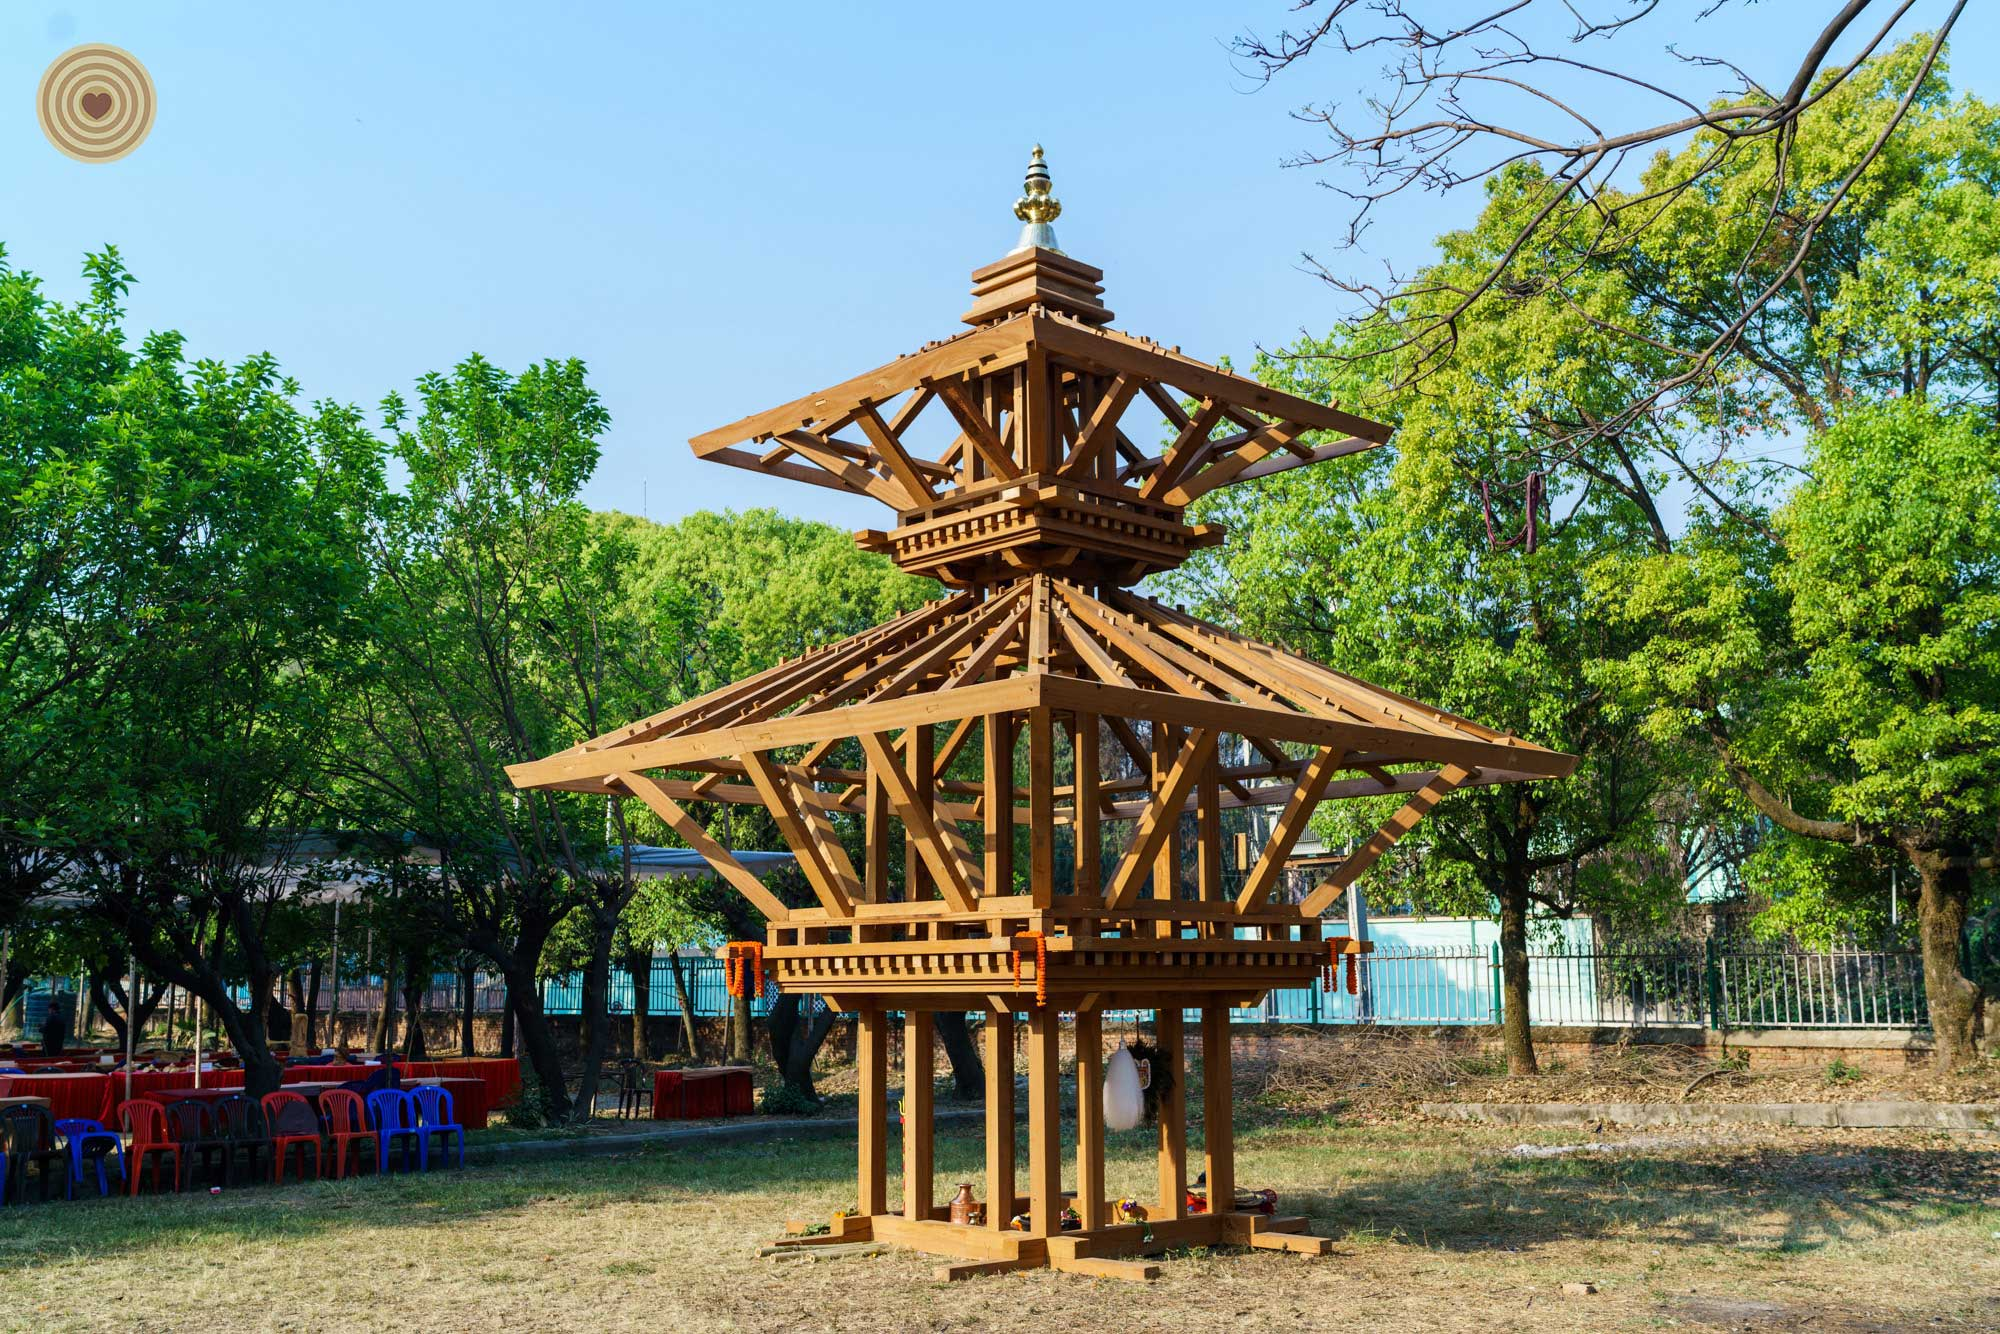 TIERED TEMPLE, 2016 WWD, Wood Architecture